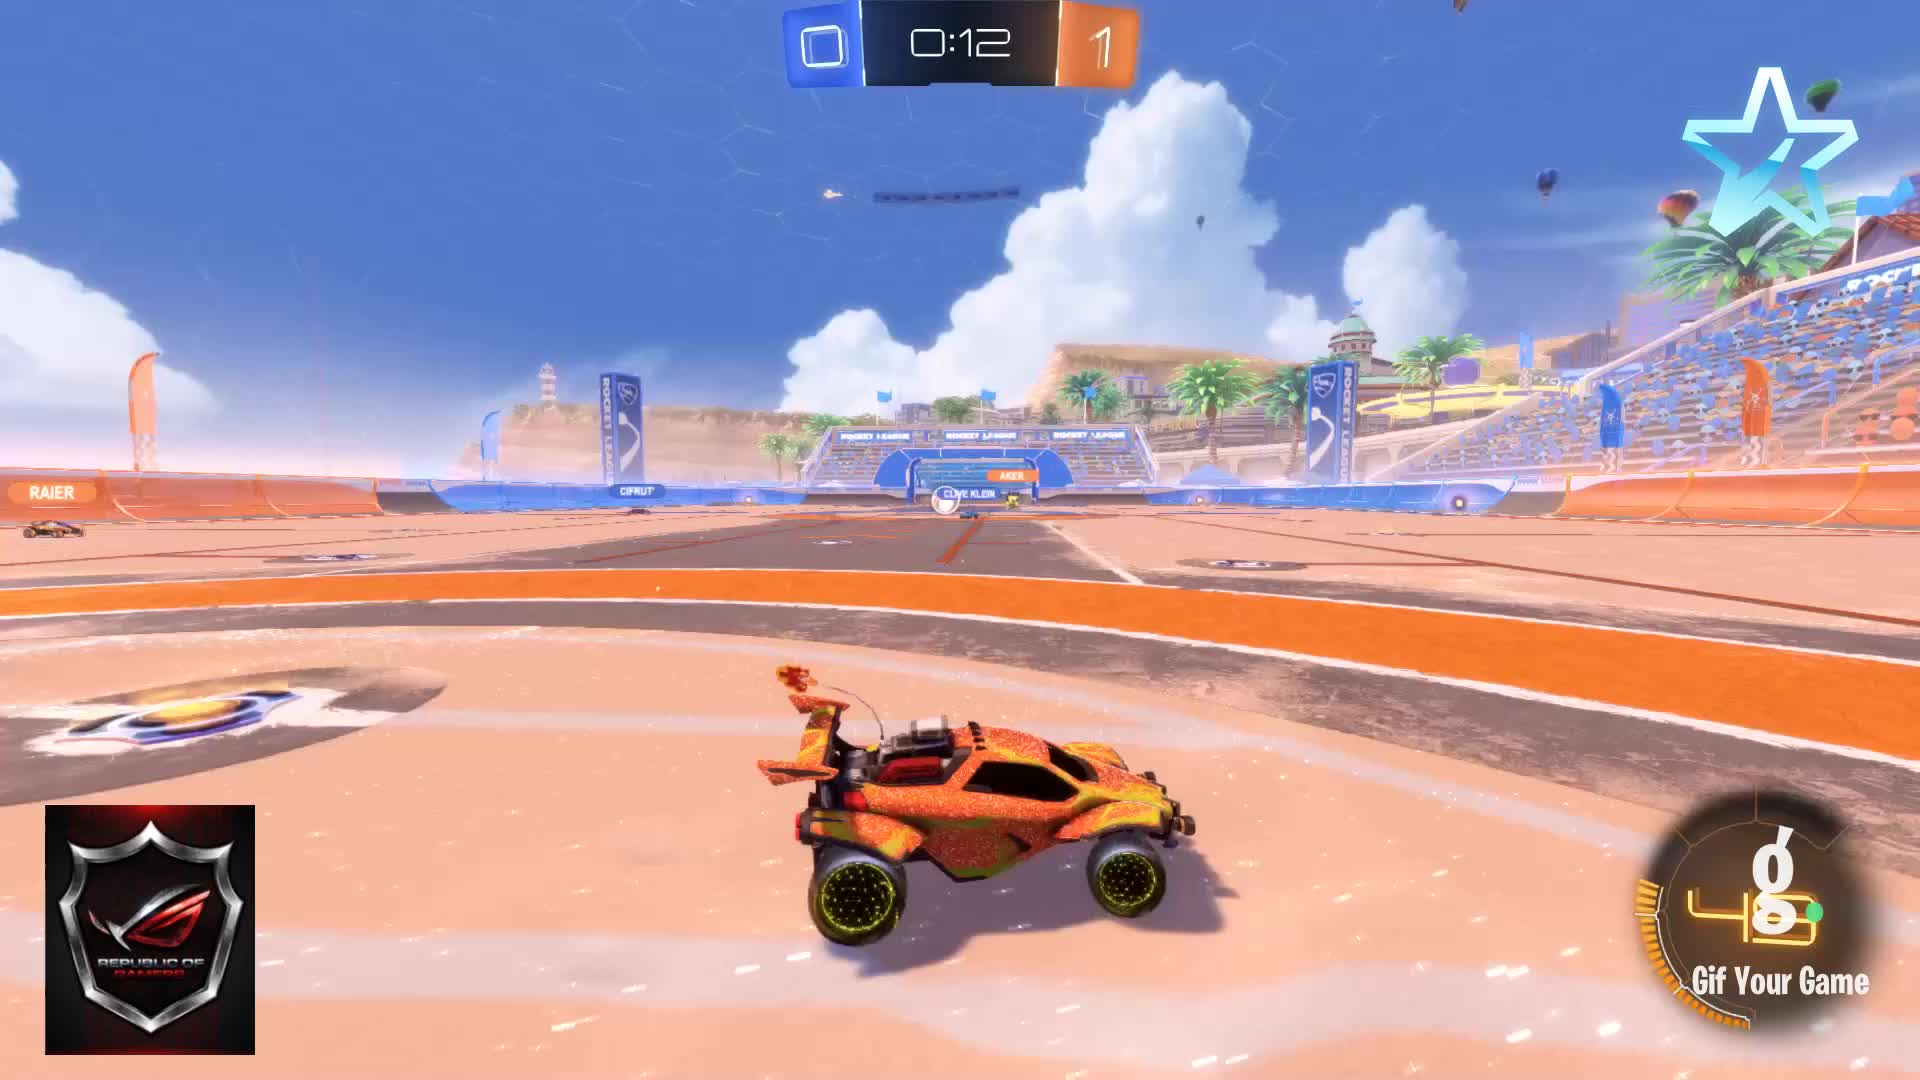 Distroy_-, Gif Your Game, GifYourGame, Goal, Rocket League, RocketLeague, Goal 2: Distroy_- GIFs